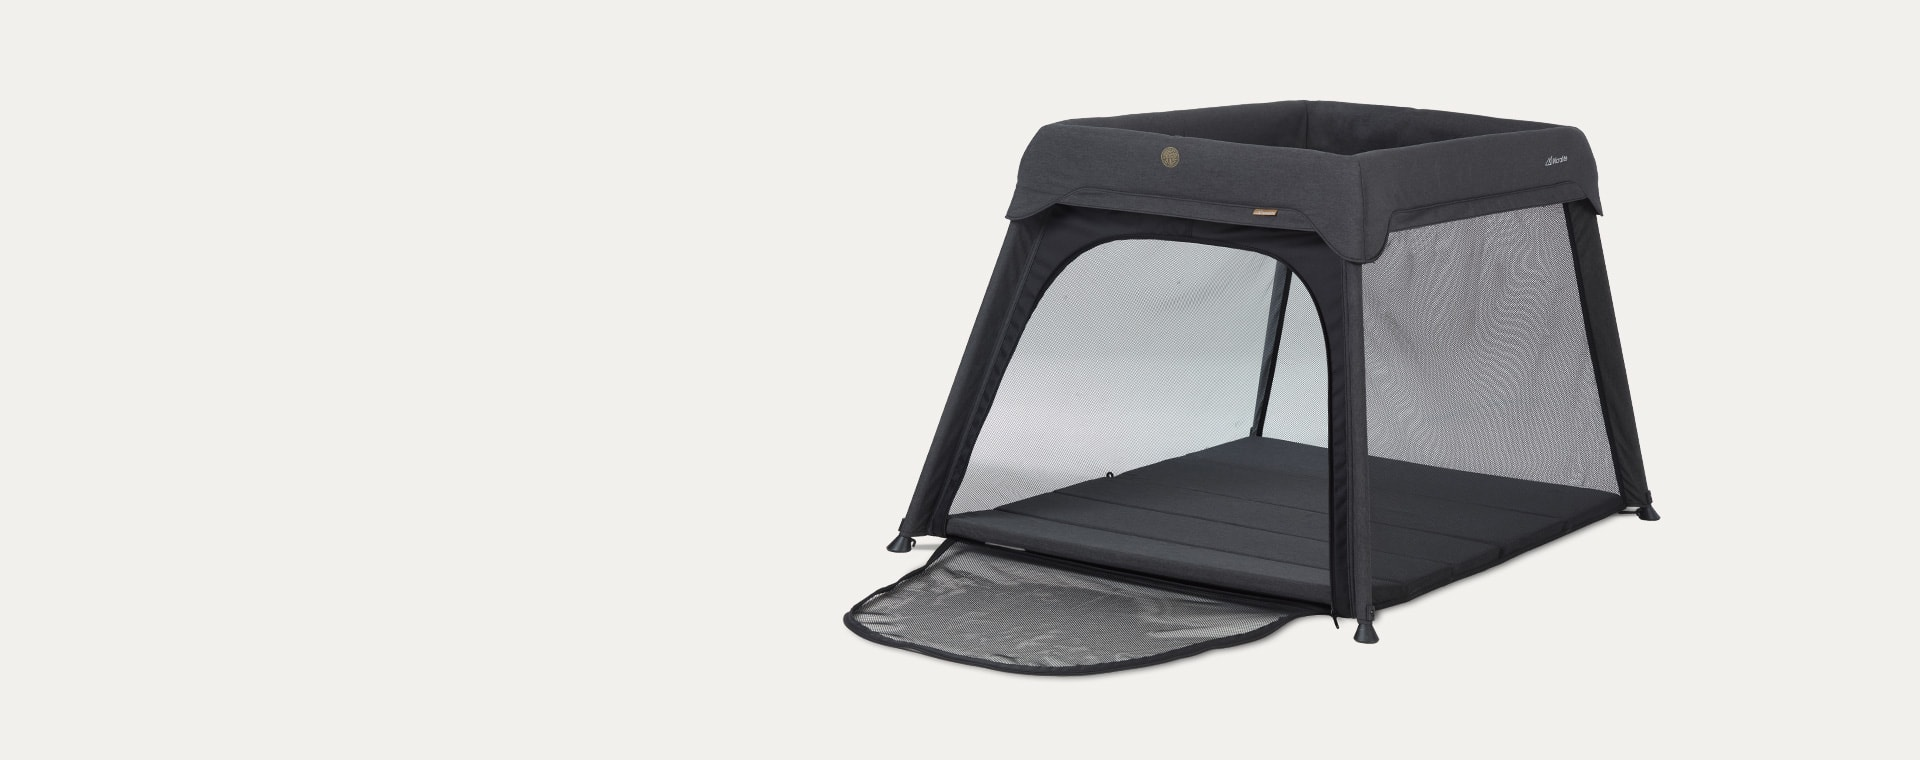 Black Micralite Sleep & Go Travel Cot